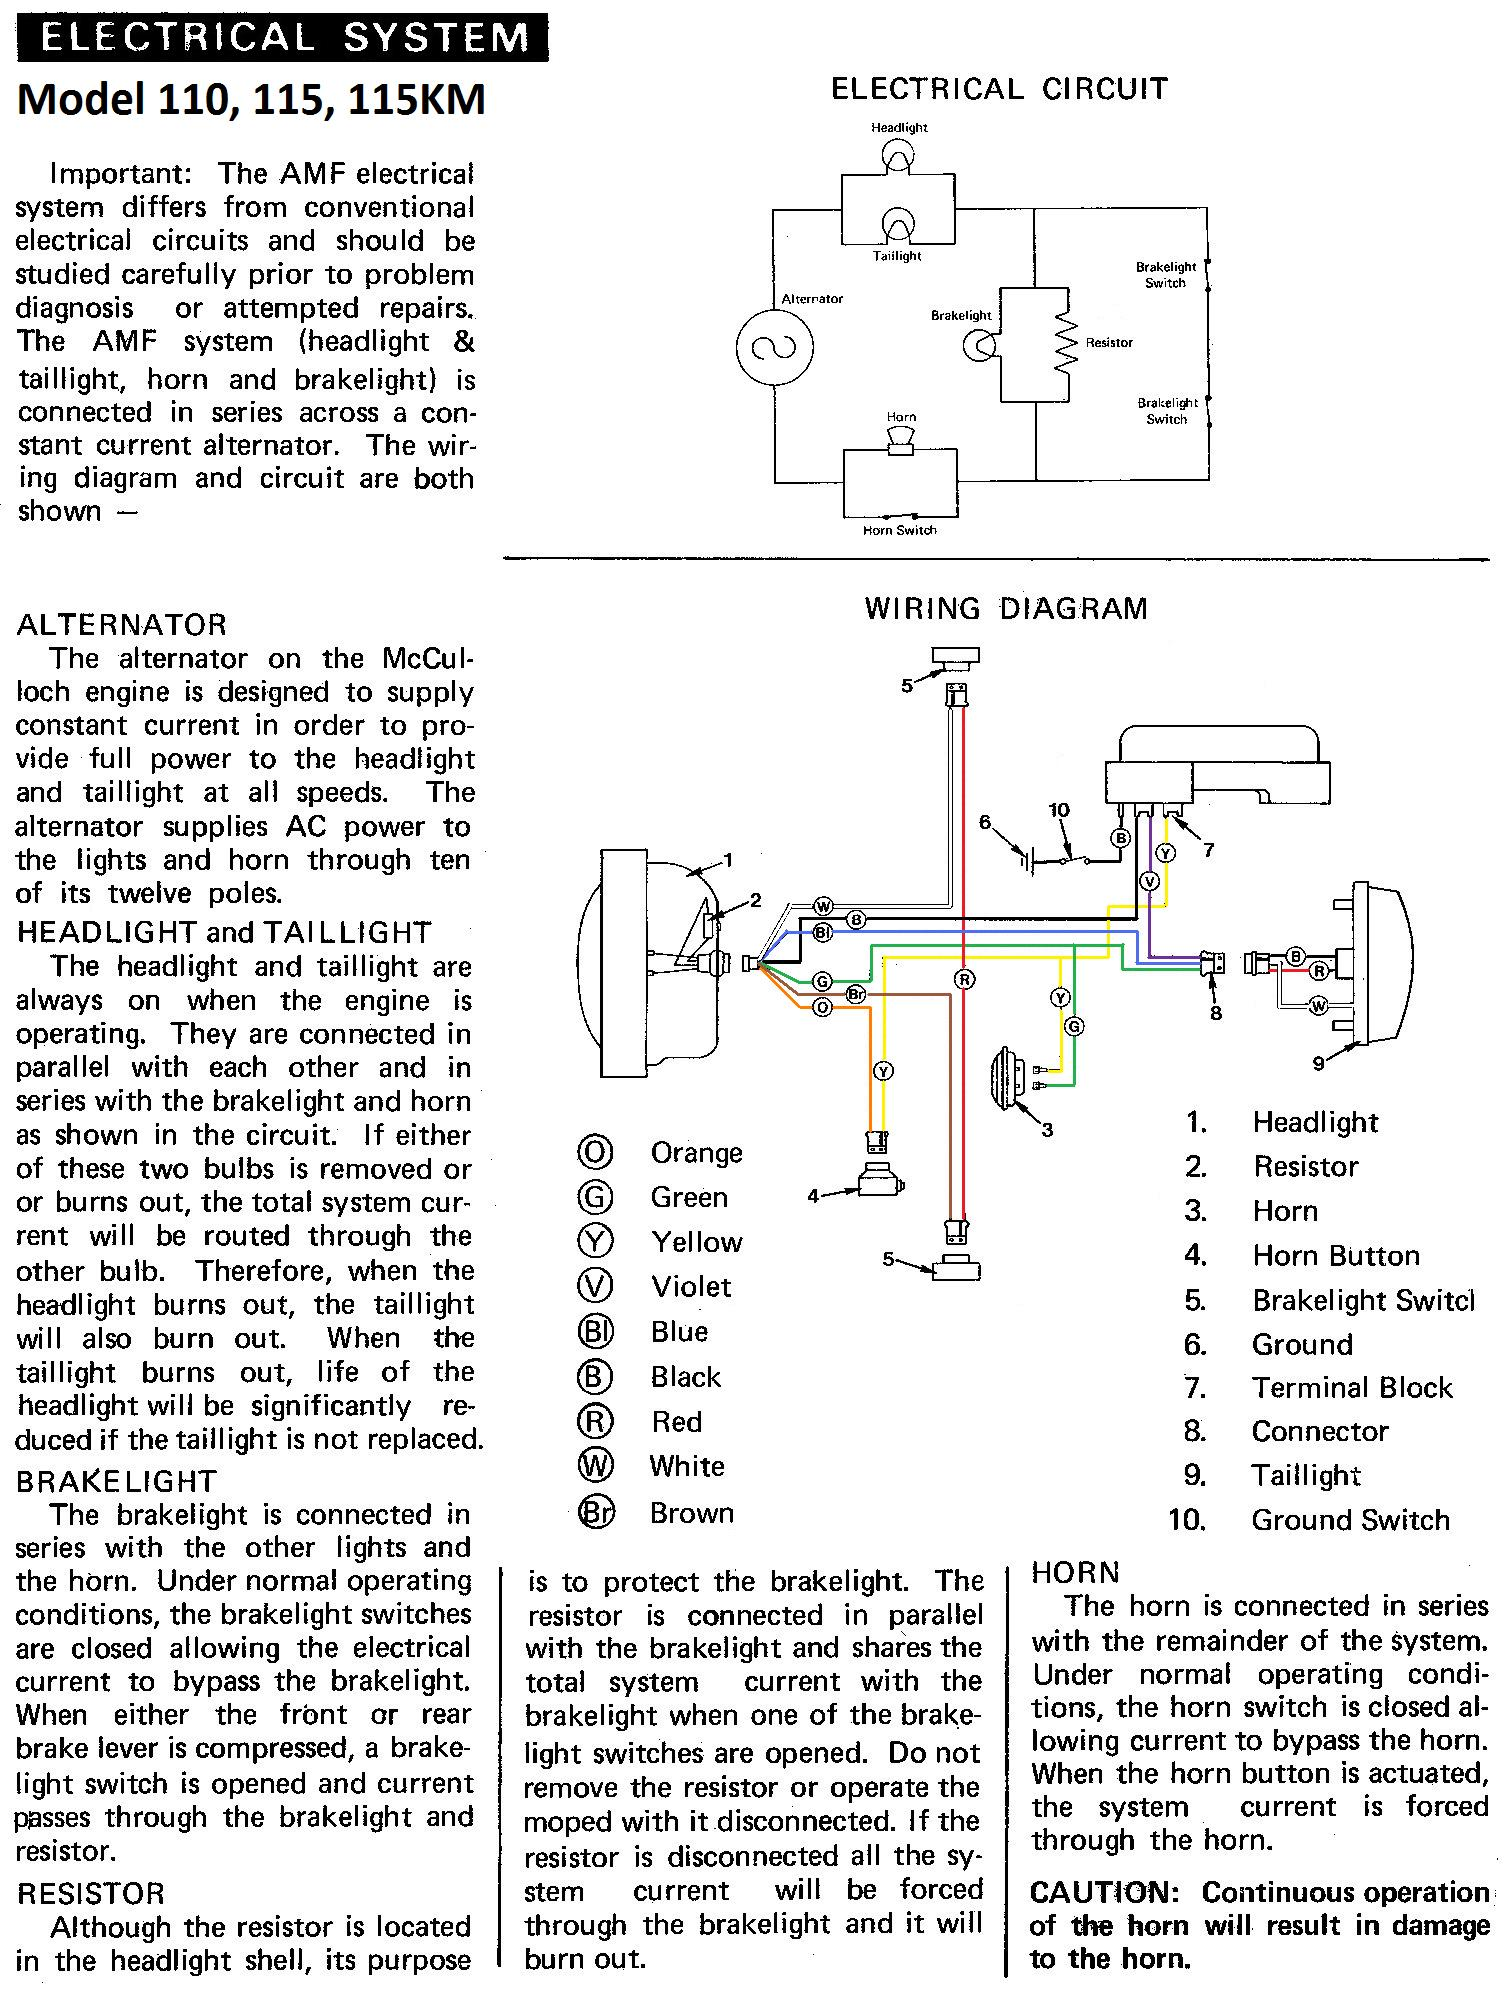 AMF 110 115 115KM Wiring Diagram amf parts myrons mopeds mec scissor lift wiring diagram at panicattacktreatment.co